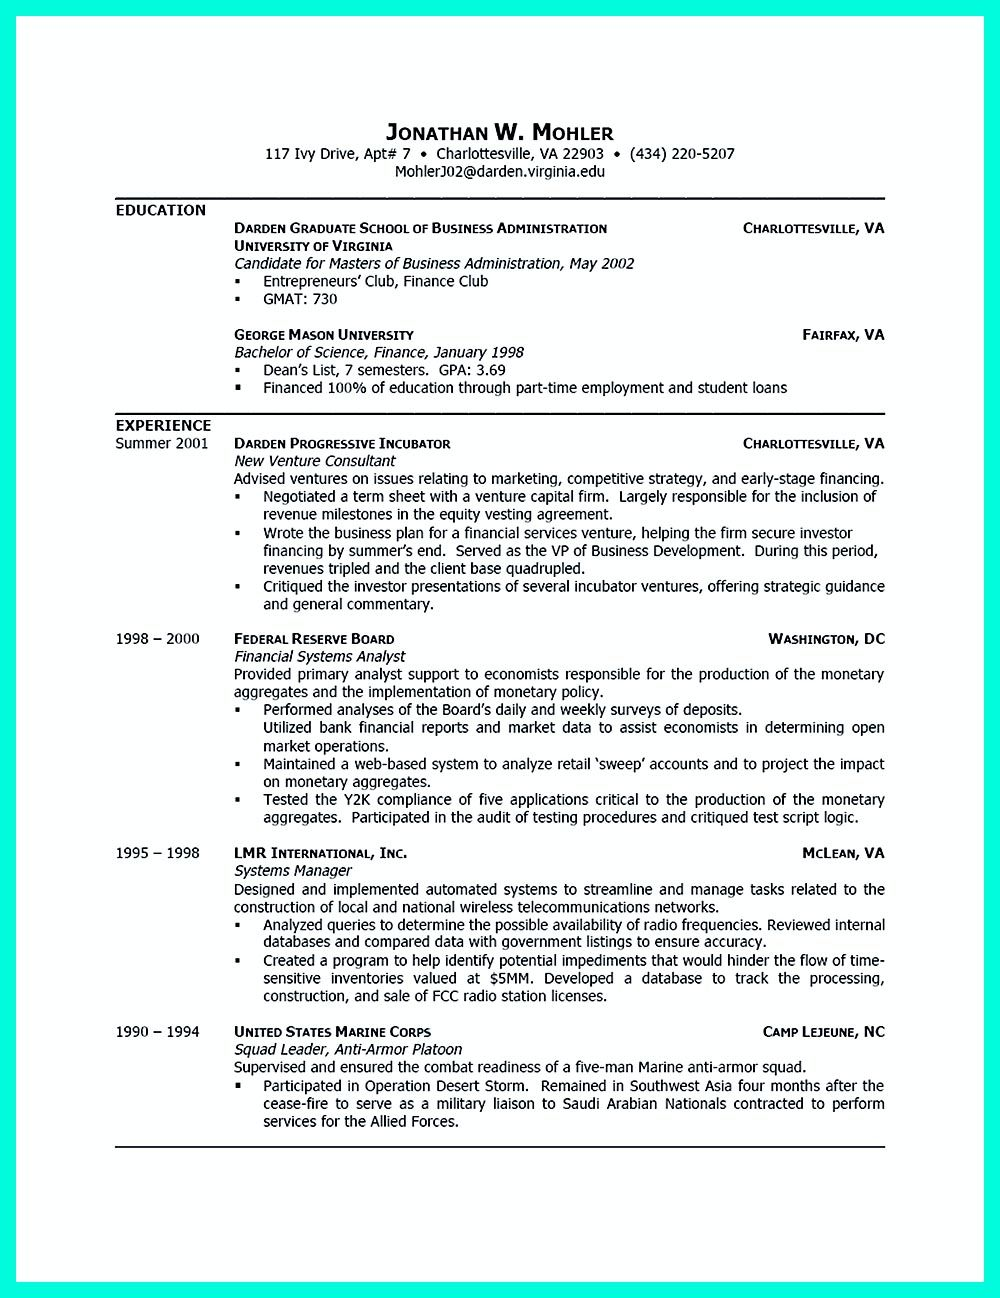 Internship Resume Template Microsoft Word Pin On Resume Sample Template And Format  Pinterest  Student